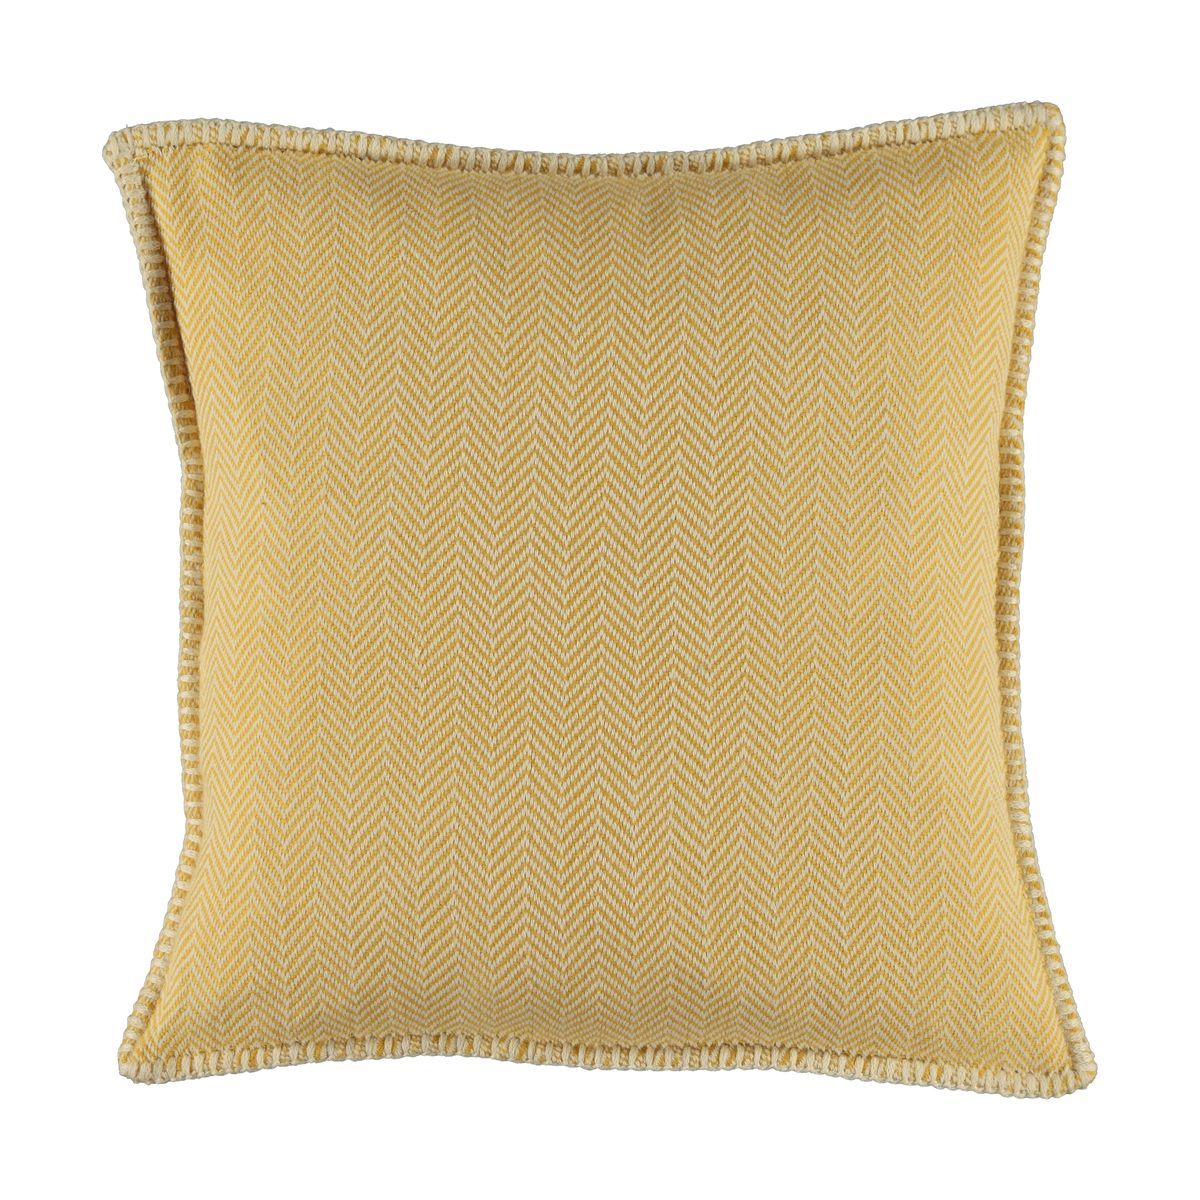 Cushion cover / ZigZag- Yellow / 40x40